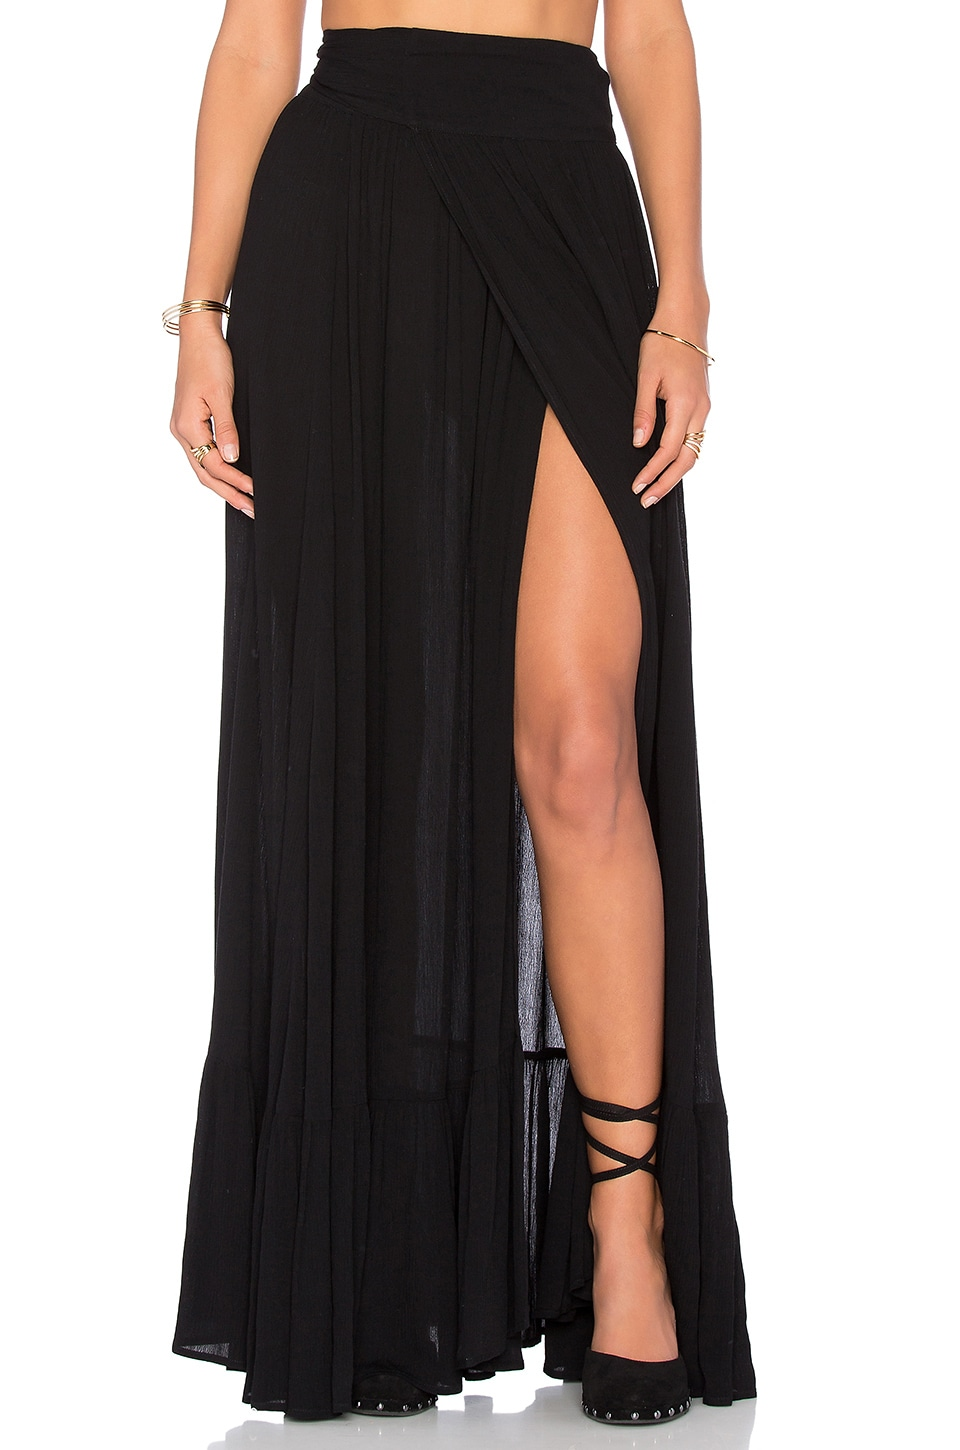 Wildfox Couture Maxi Skirt in Black